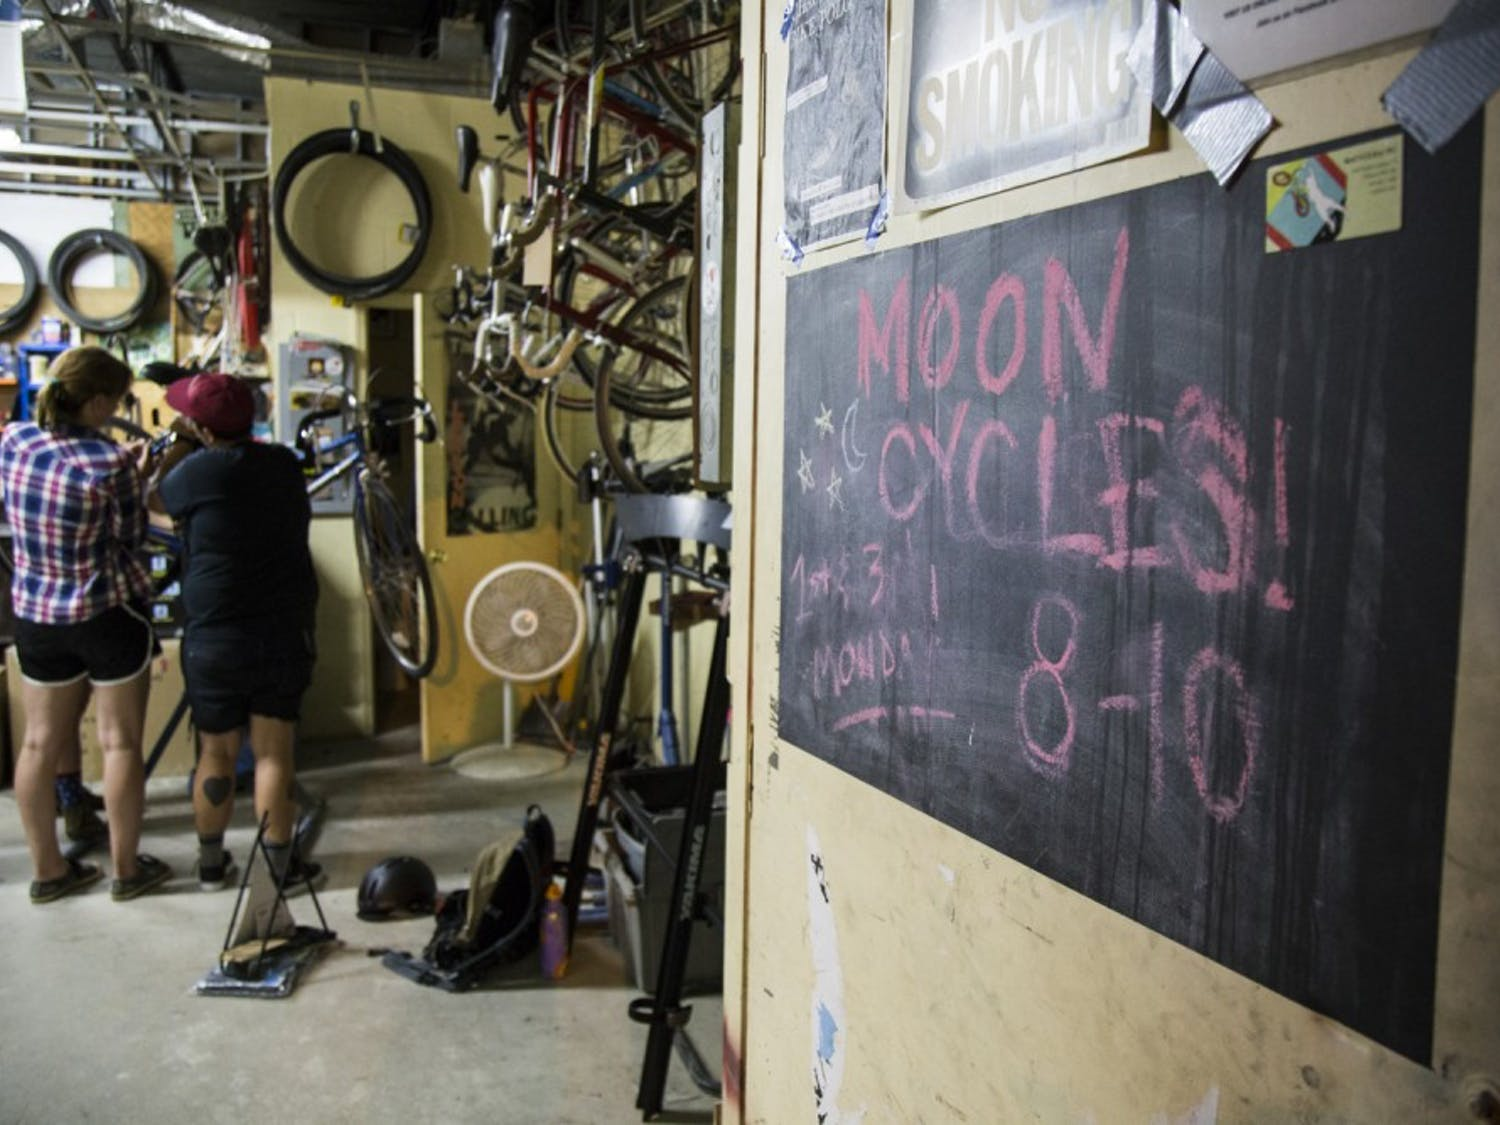 Victoria Petermann (left) and Ryann Giorgi work on fiixing a bike at a bi-weekly Moon Cycles meeting on Sept. 7, 2015. The group was founded by Giorgi, Petermann, Jolie Day, and Hannah and began meeting in November, 2014.